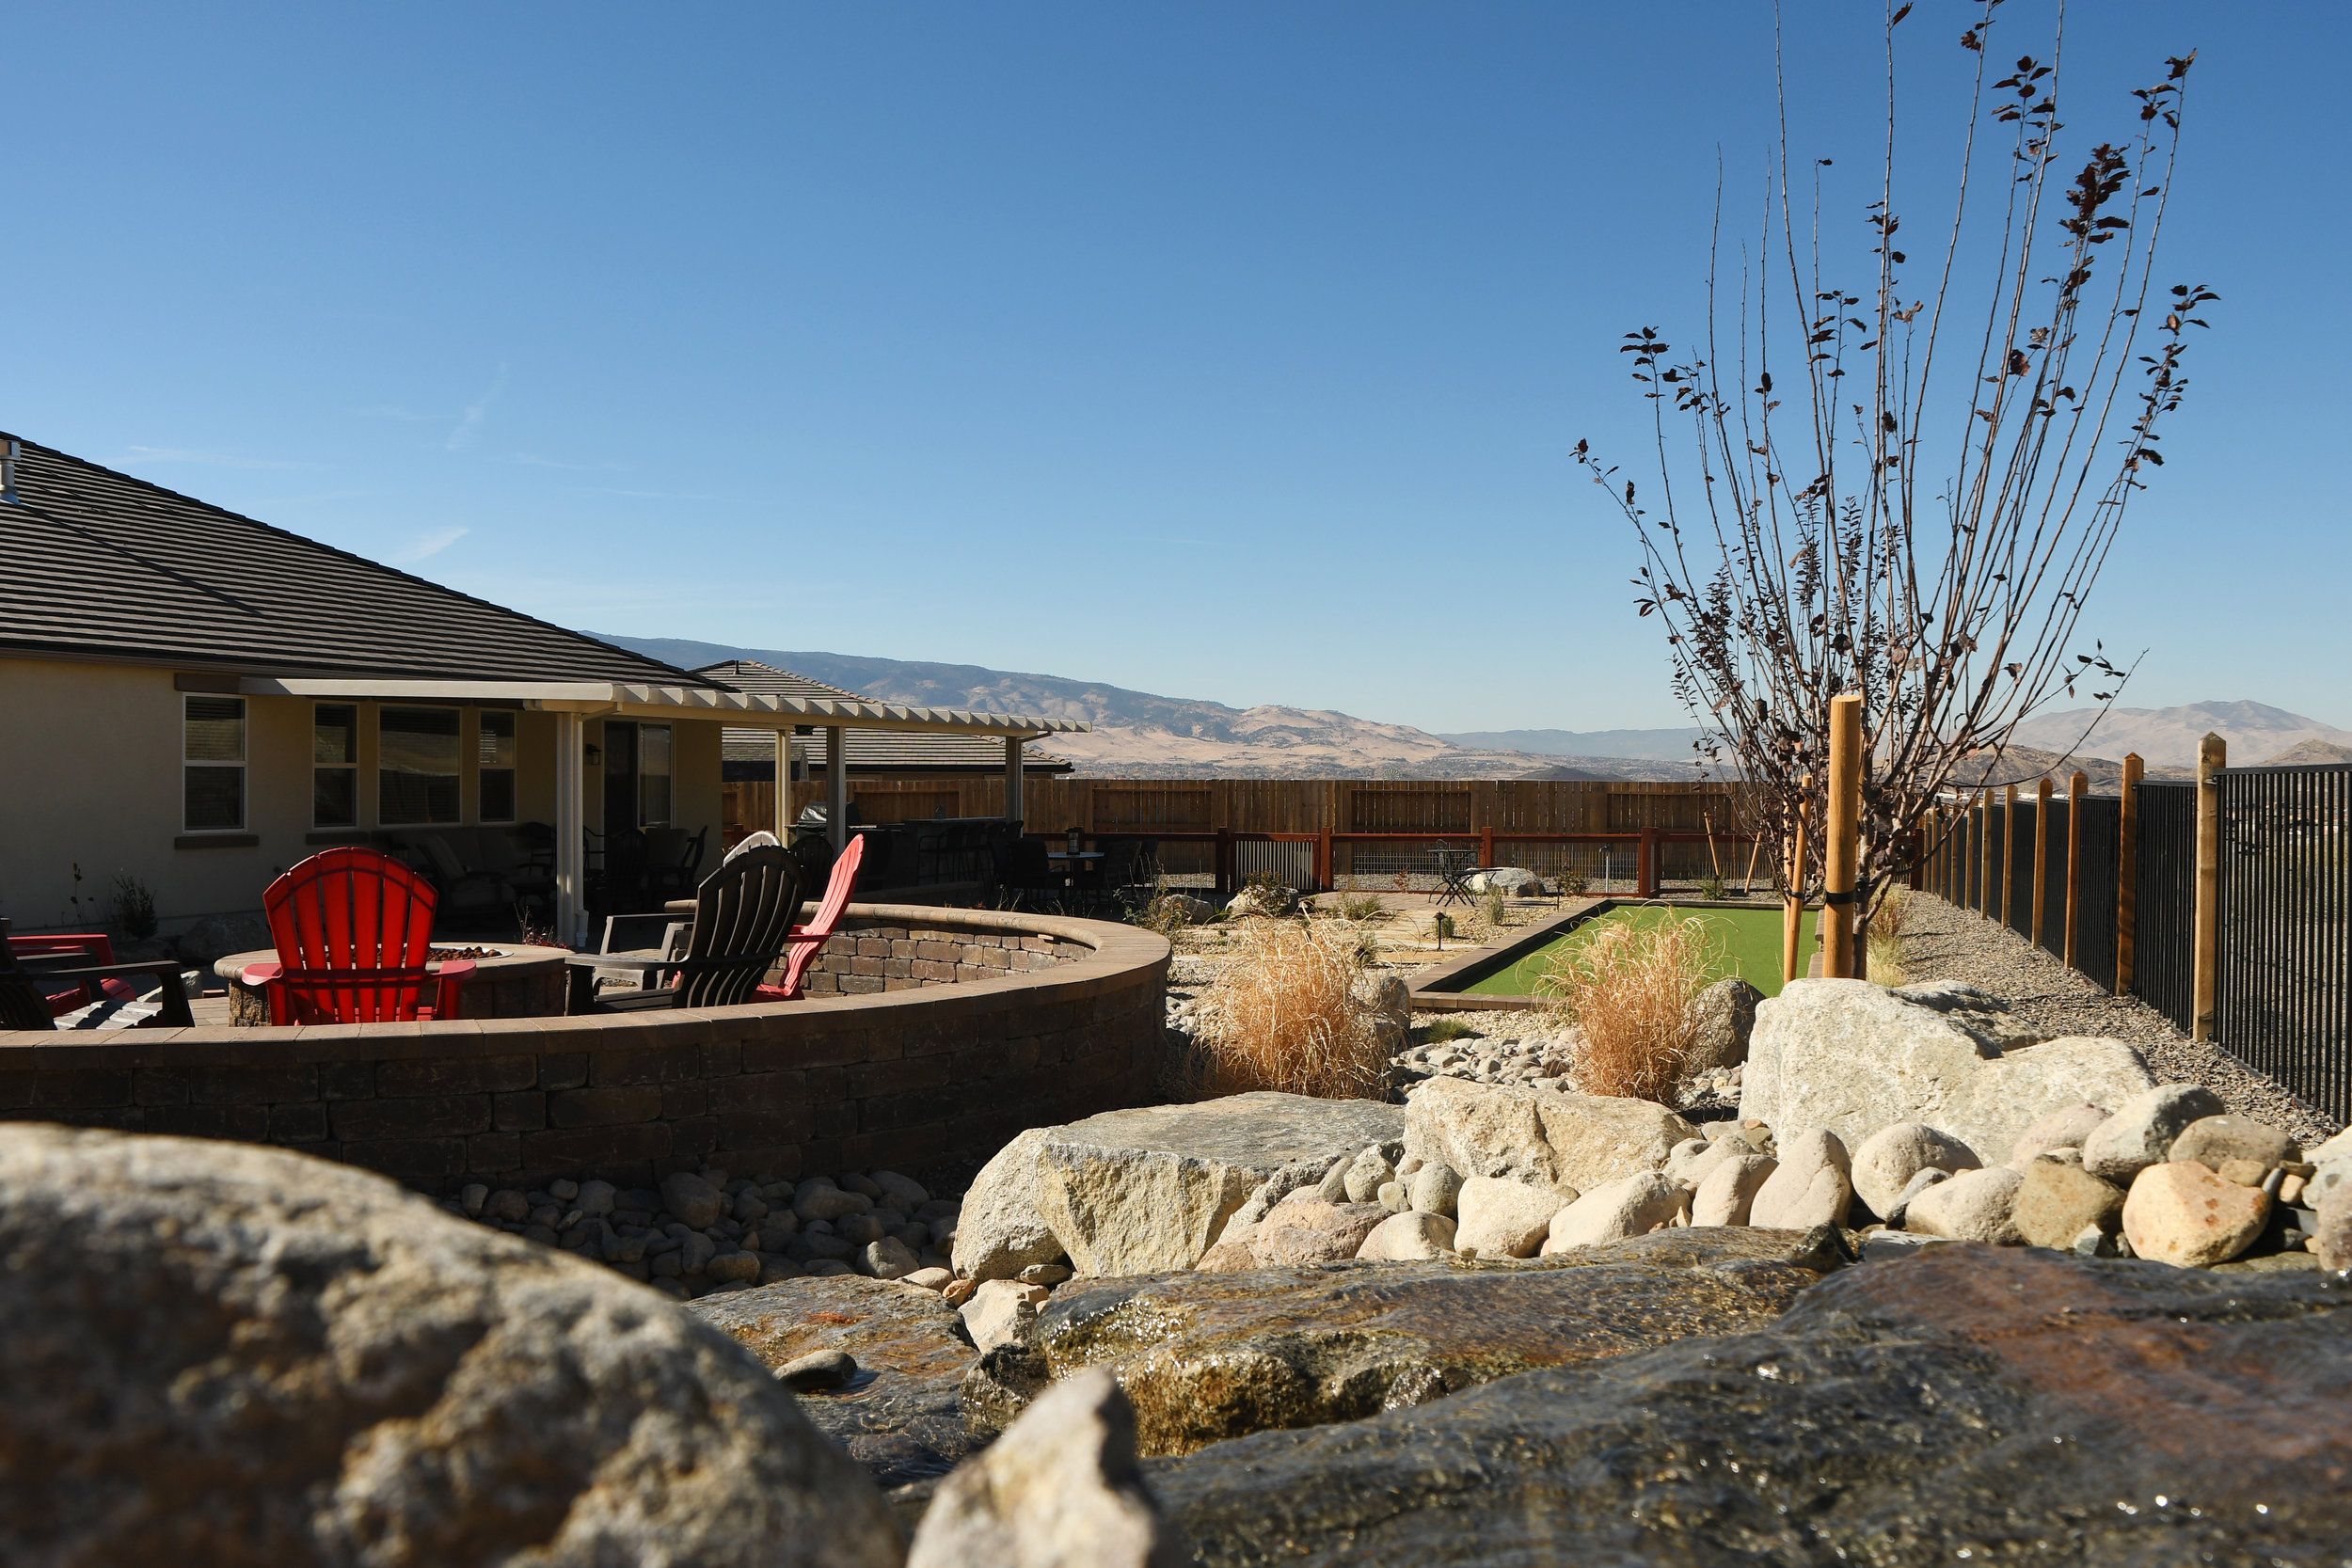 10 Questions to Ask Landscaping Companies Before Hiring in Spanish Springs, NV